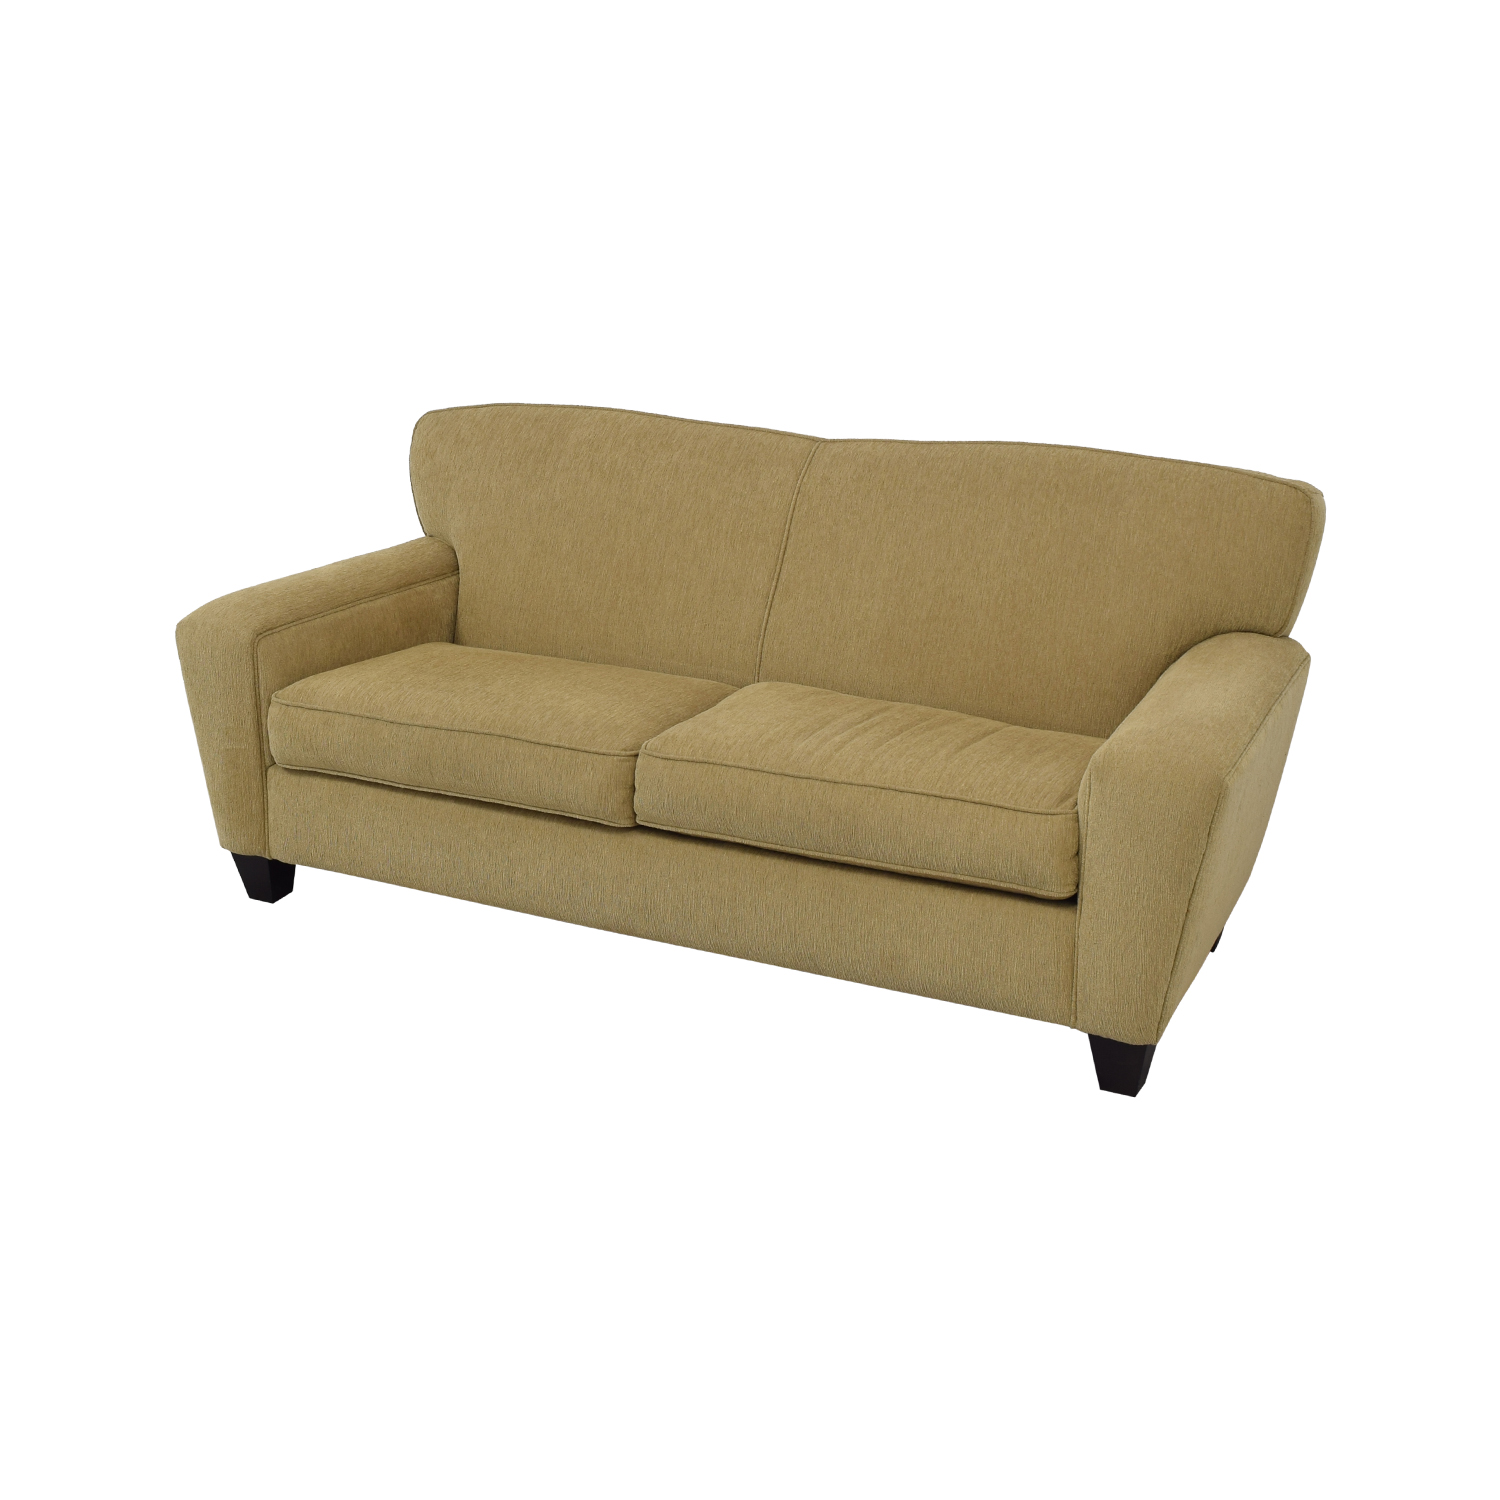 Storehouse Storehouse Two Cushion Sofa second hand